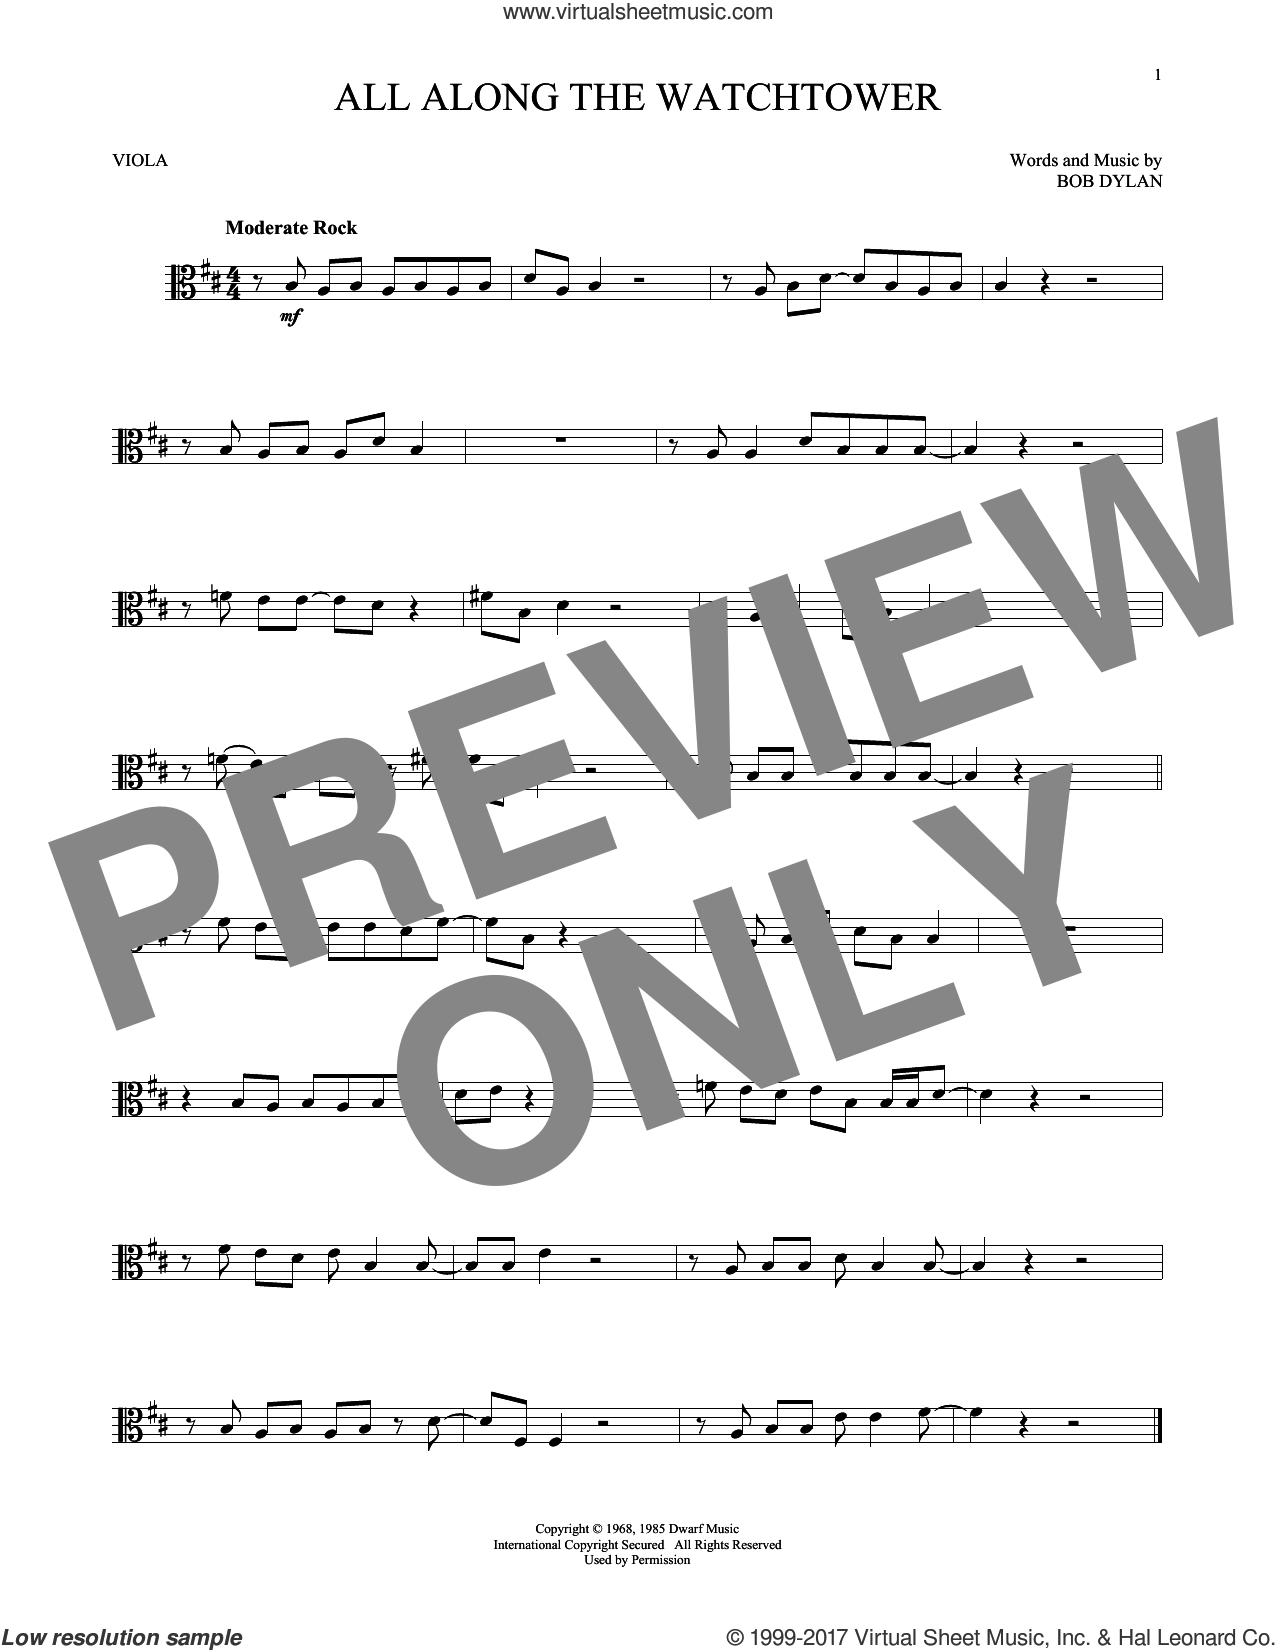 All Along The Watchtower sheet music for viola solo by Bob Dylan, intermediate skill level